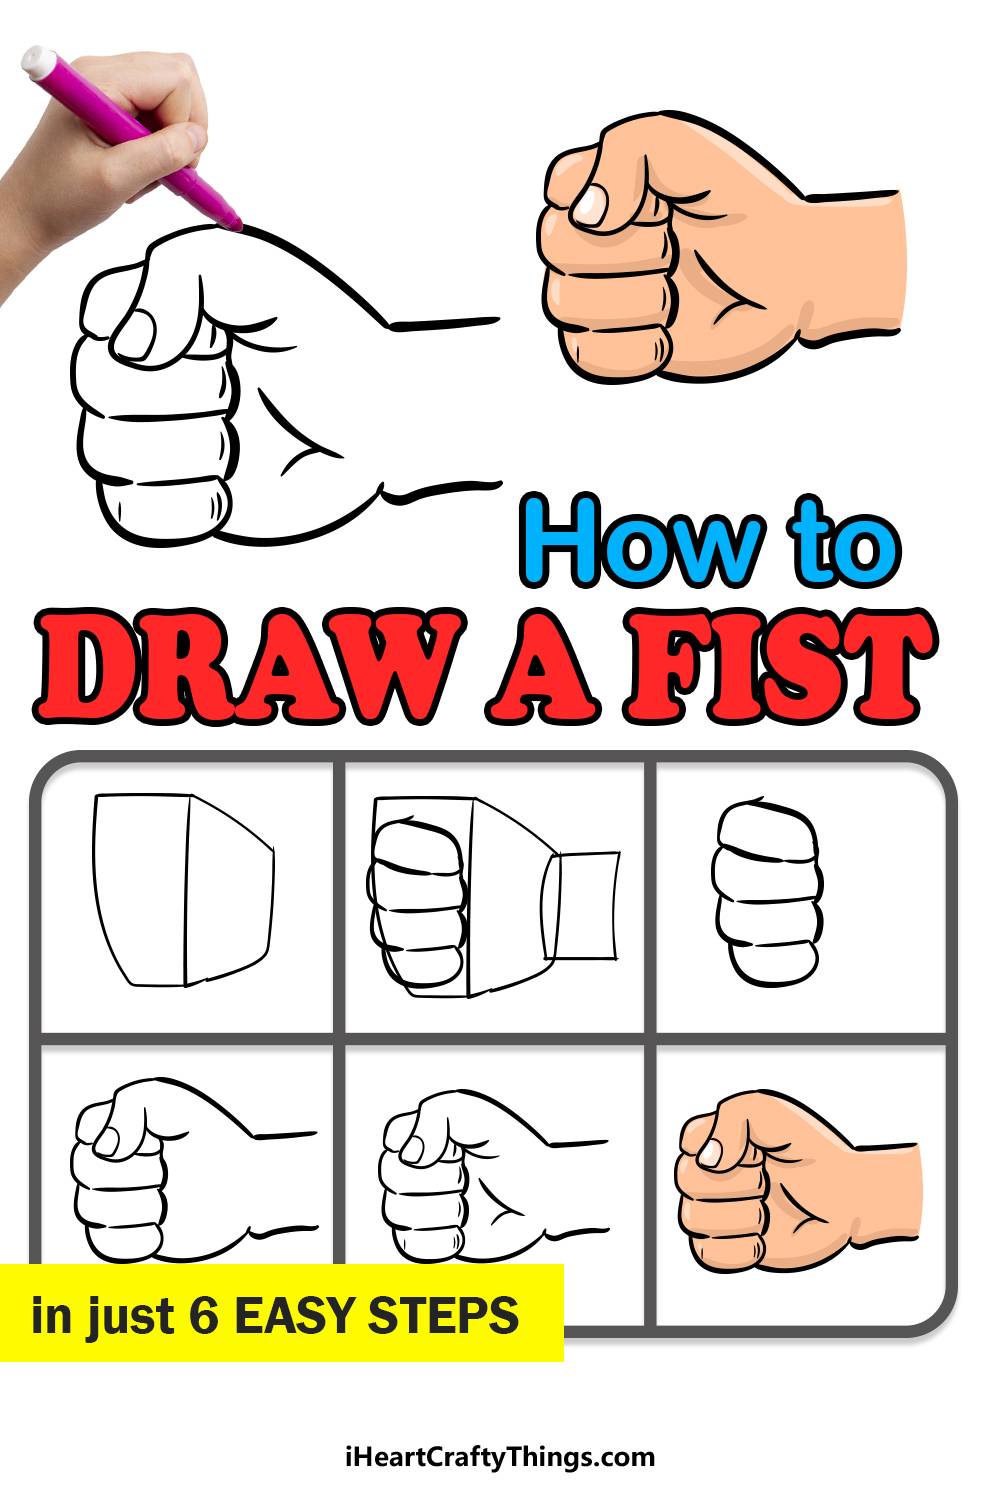 how to draw a fist in 6 easy steps